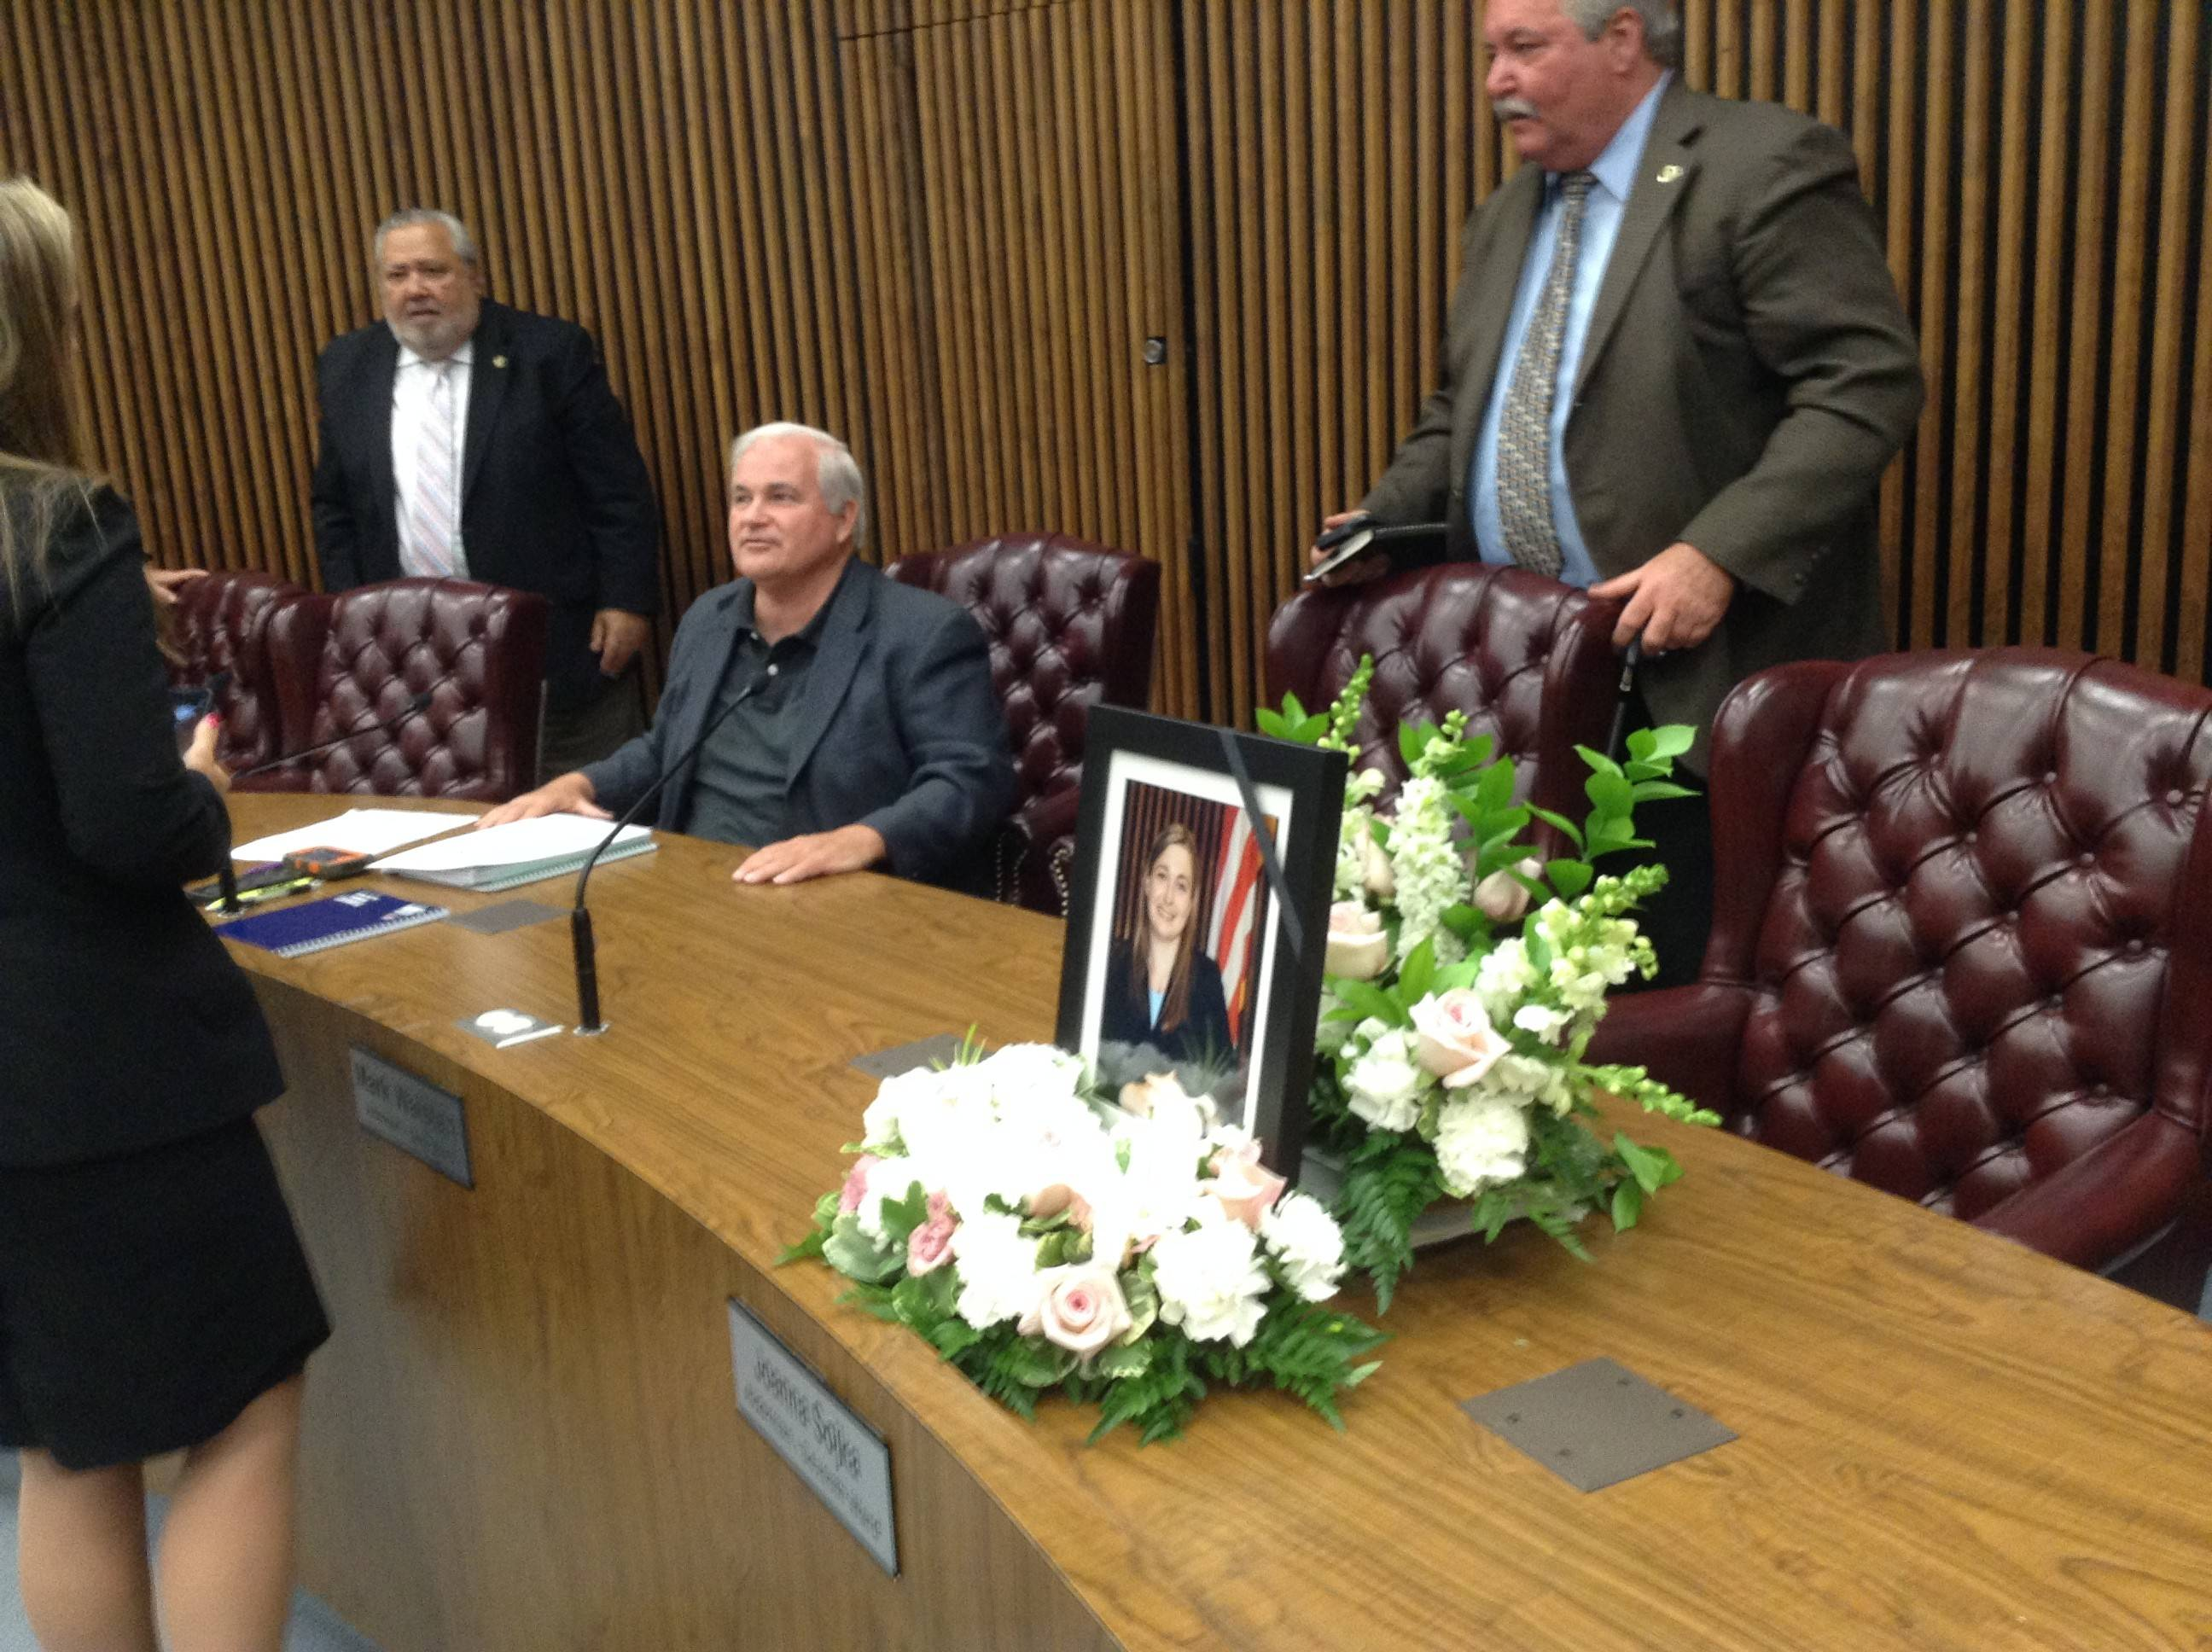 Des Plaines honors 29-year-old alderman who died